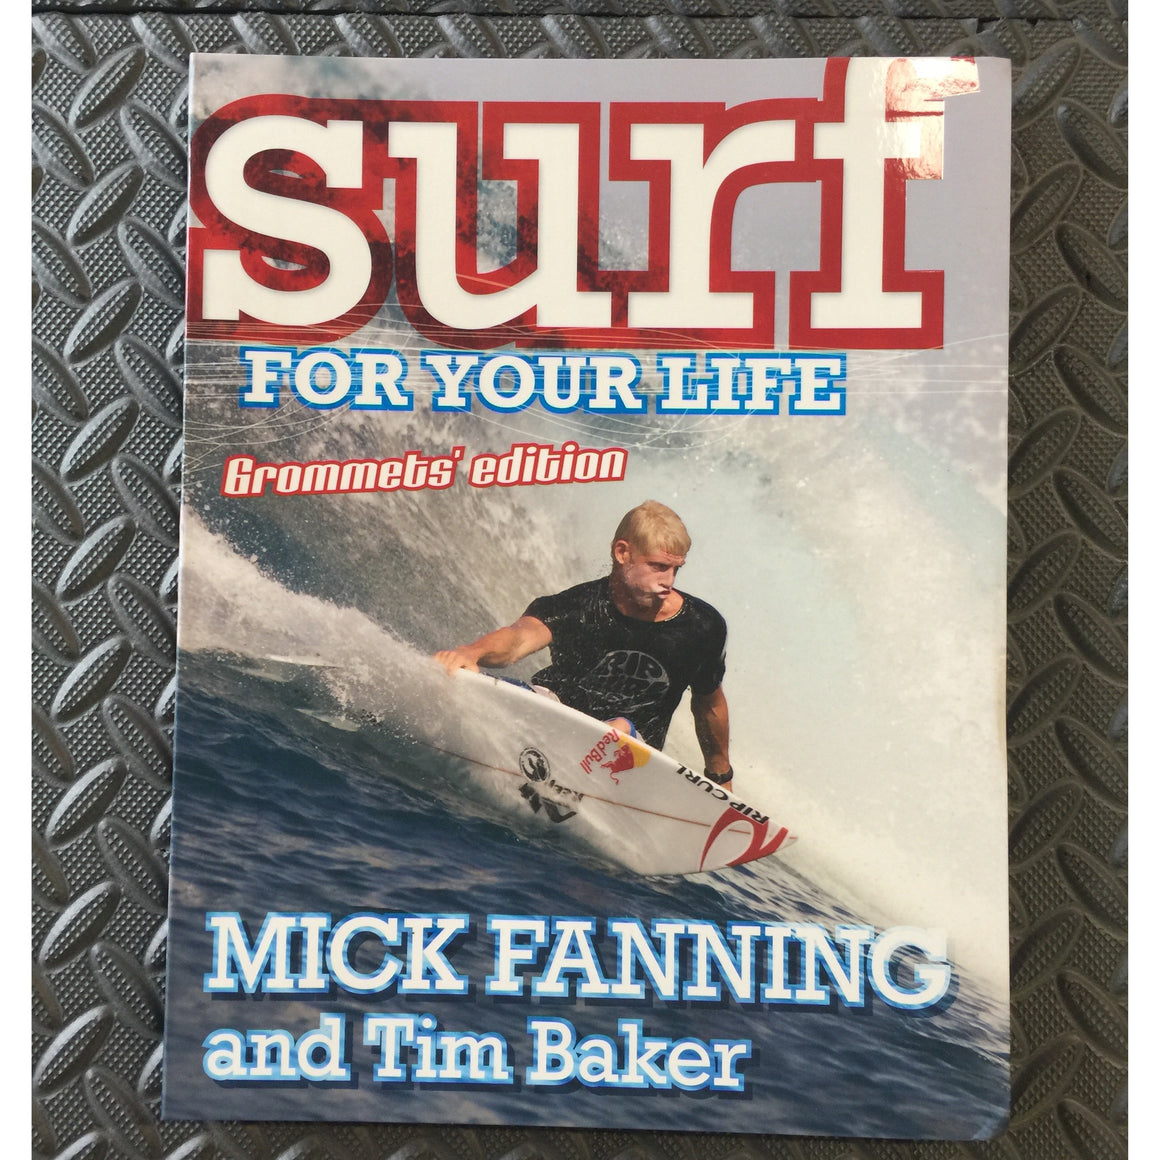 Books - Surf For Your Life: Mick Fanning Grommets edition